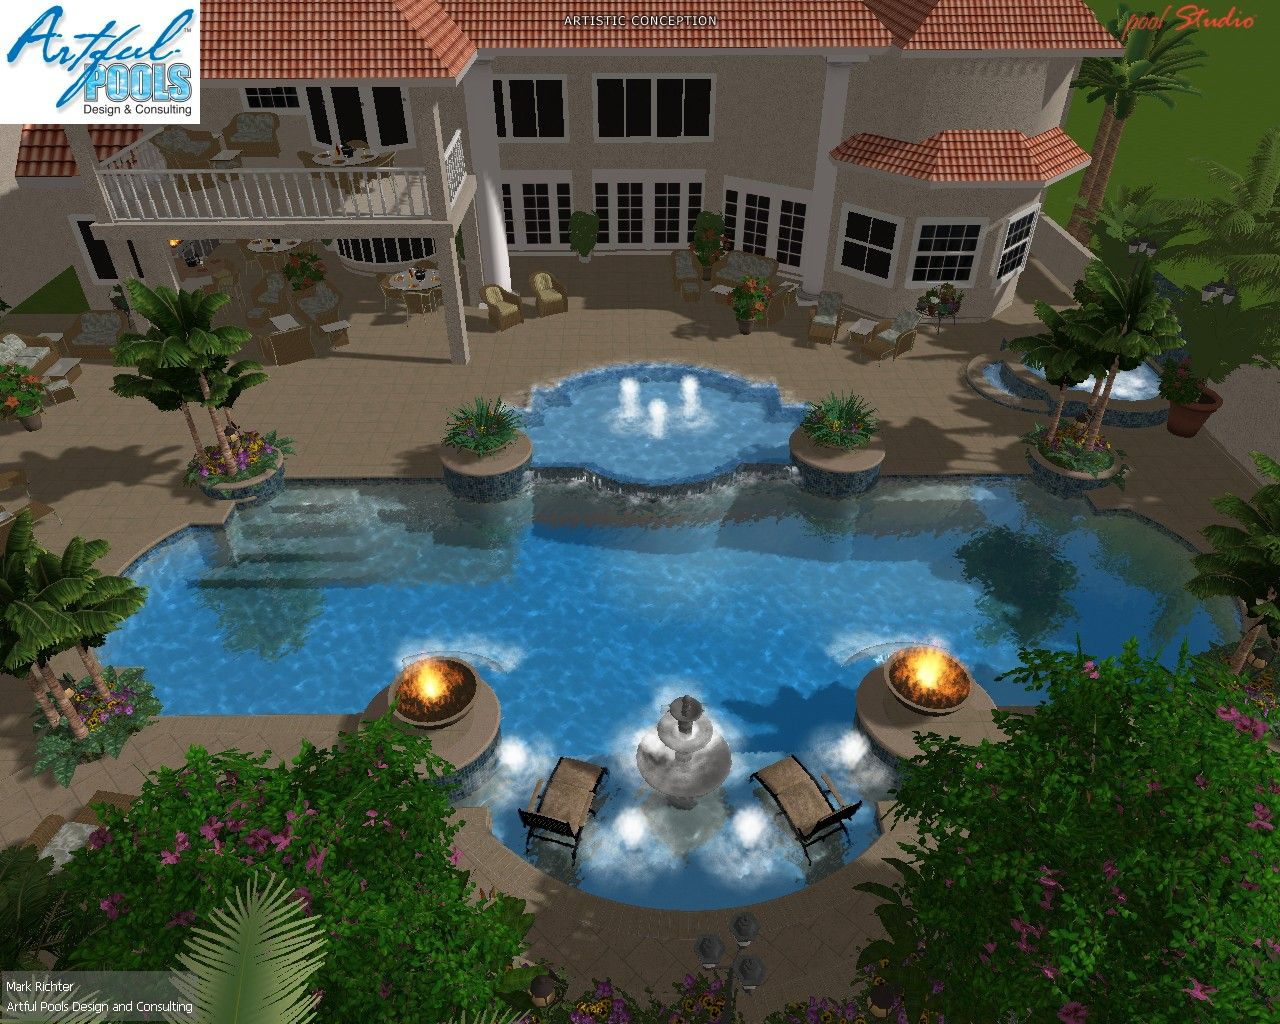 Simply Elegant Classic 3d Pool Design For Client In Spruce Creek